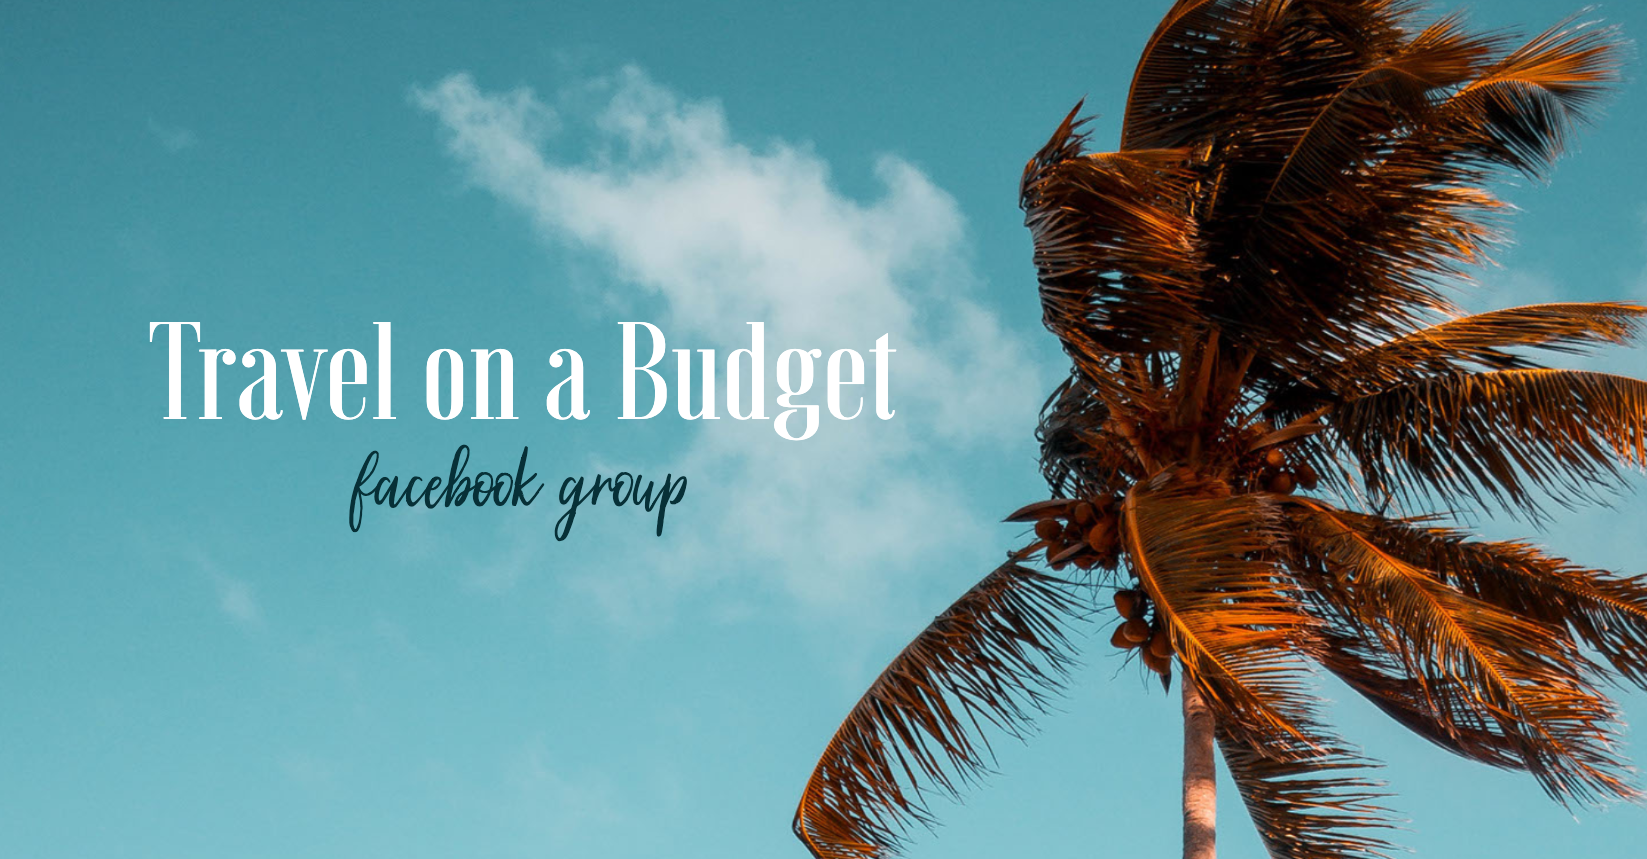 Travel on a Budget Facebook Group